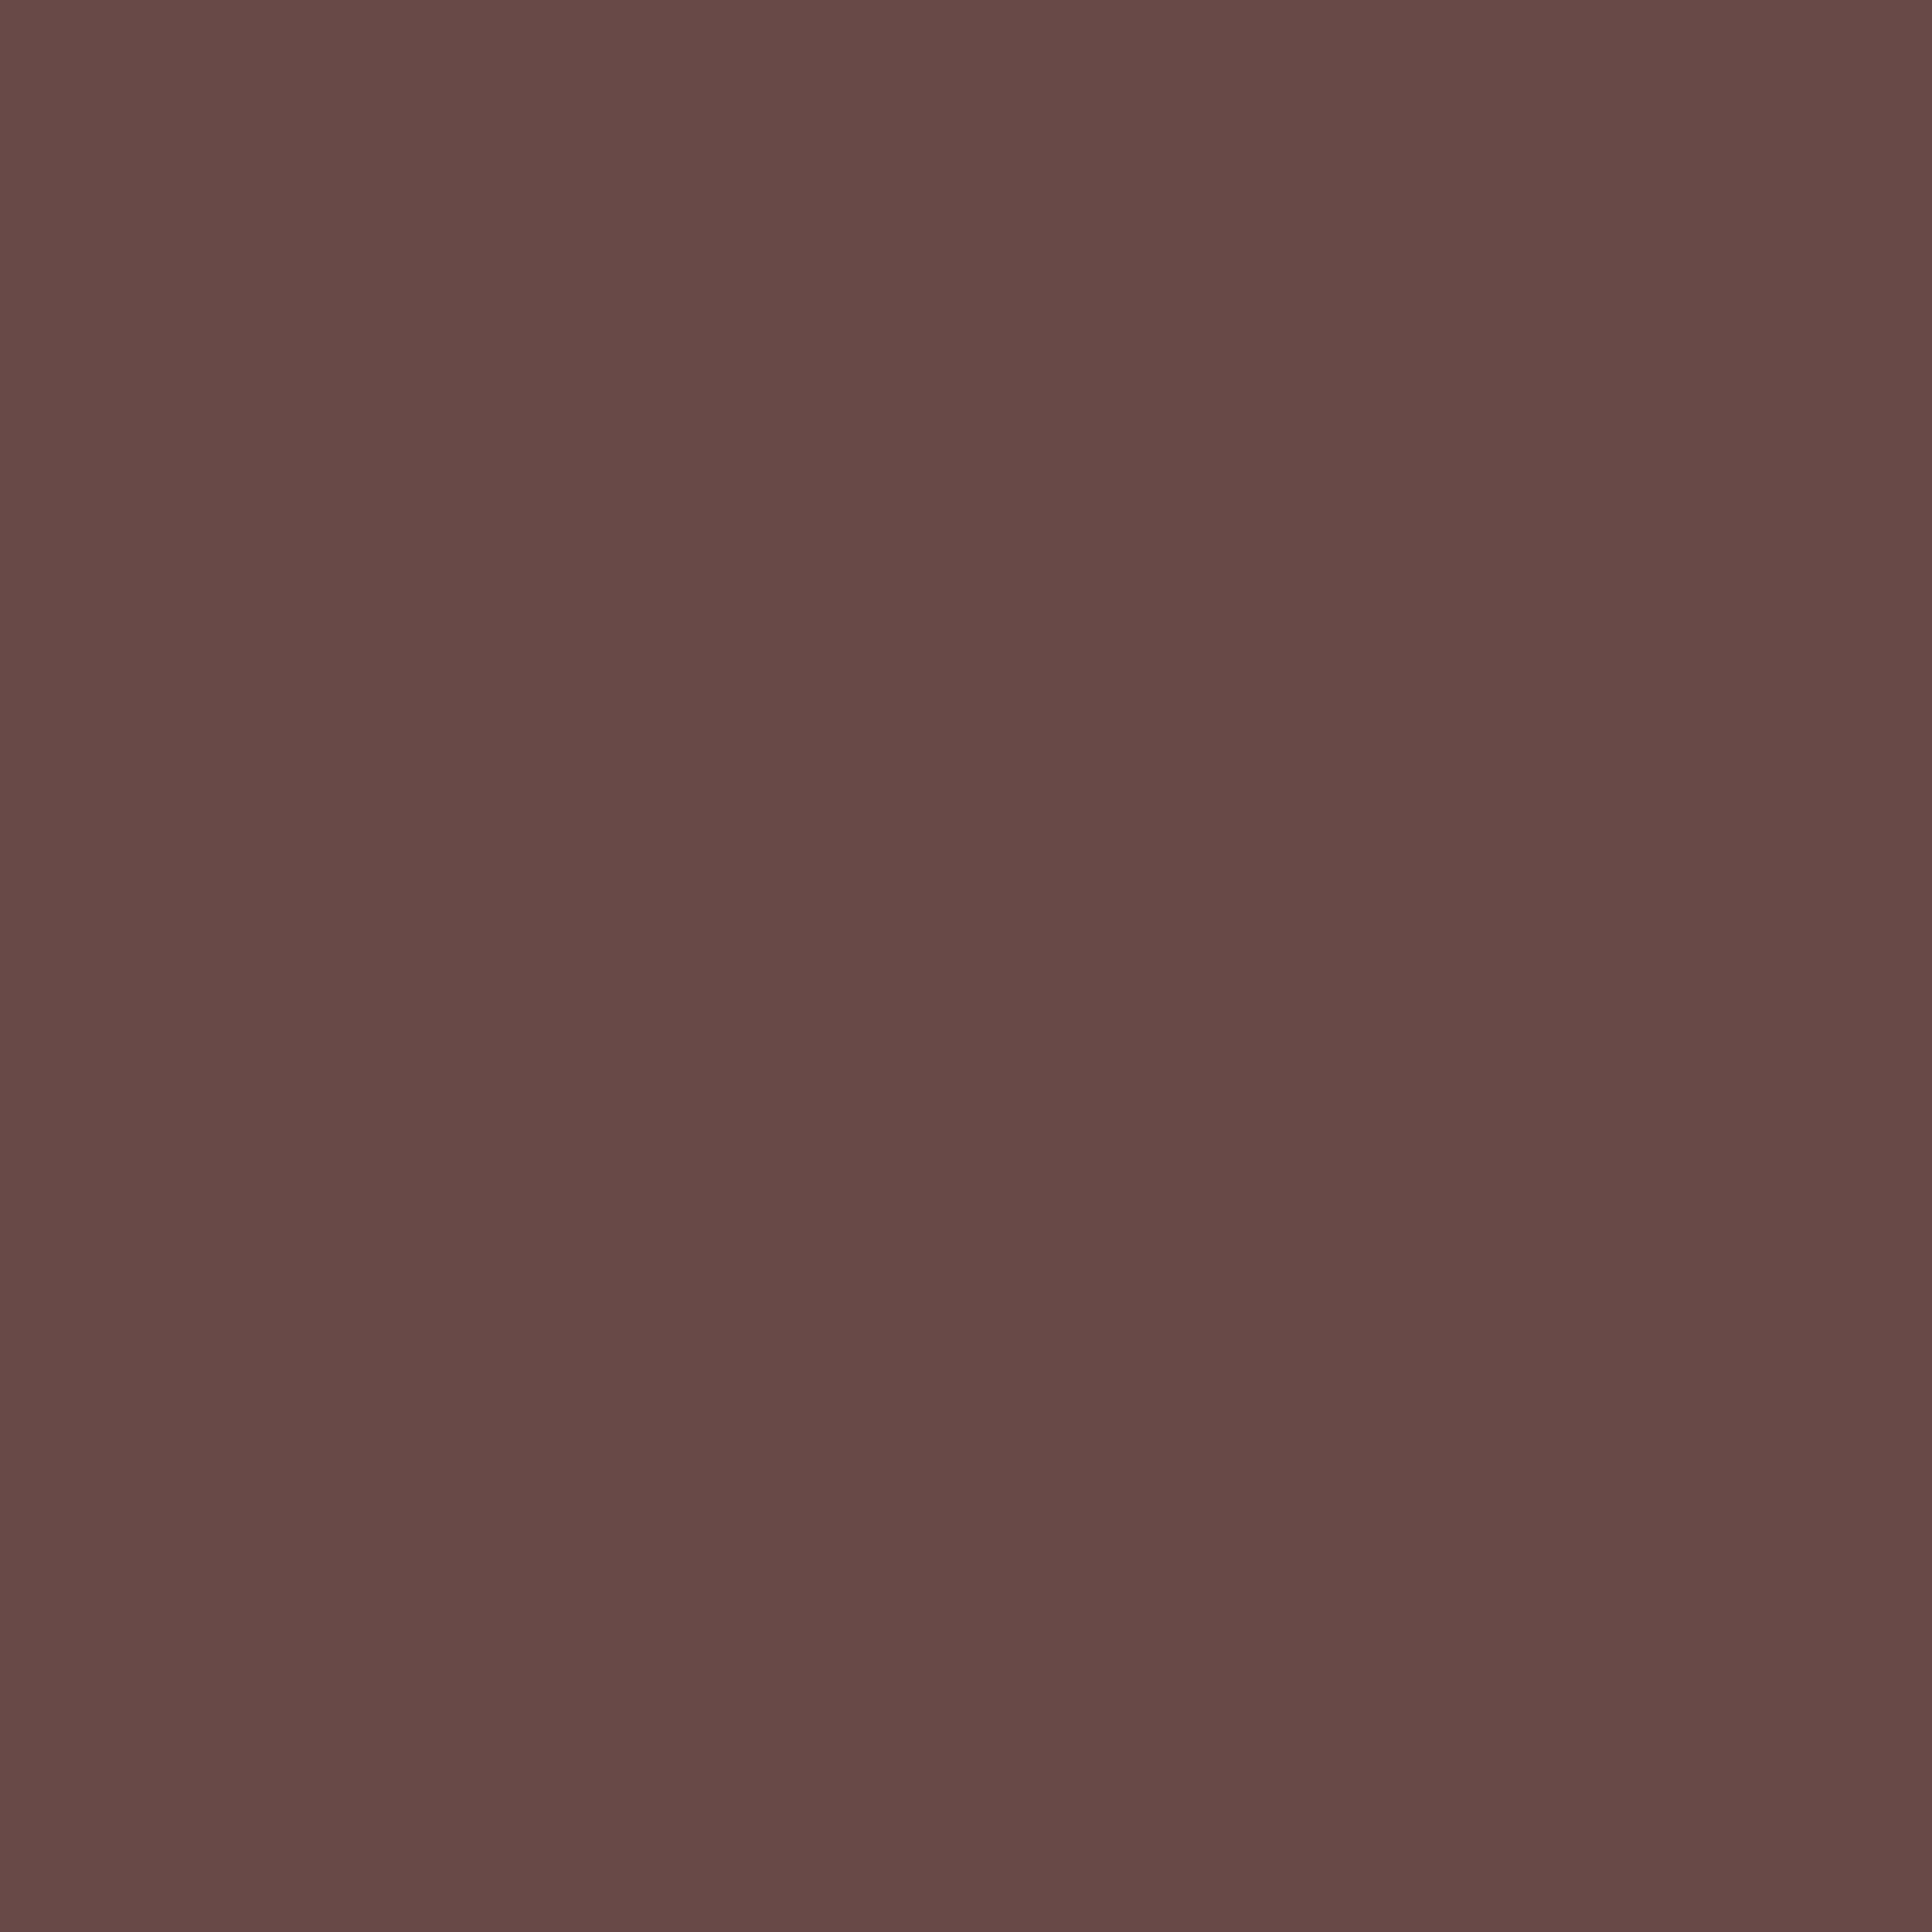 3600x3600 Rose Ebony Solid Color Background